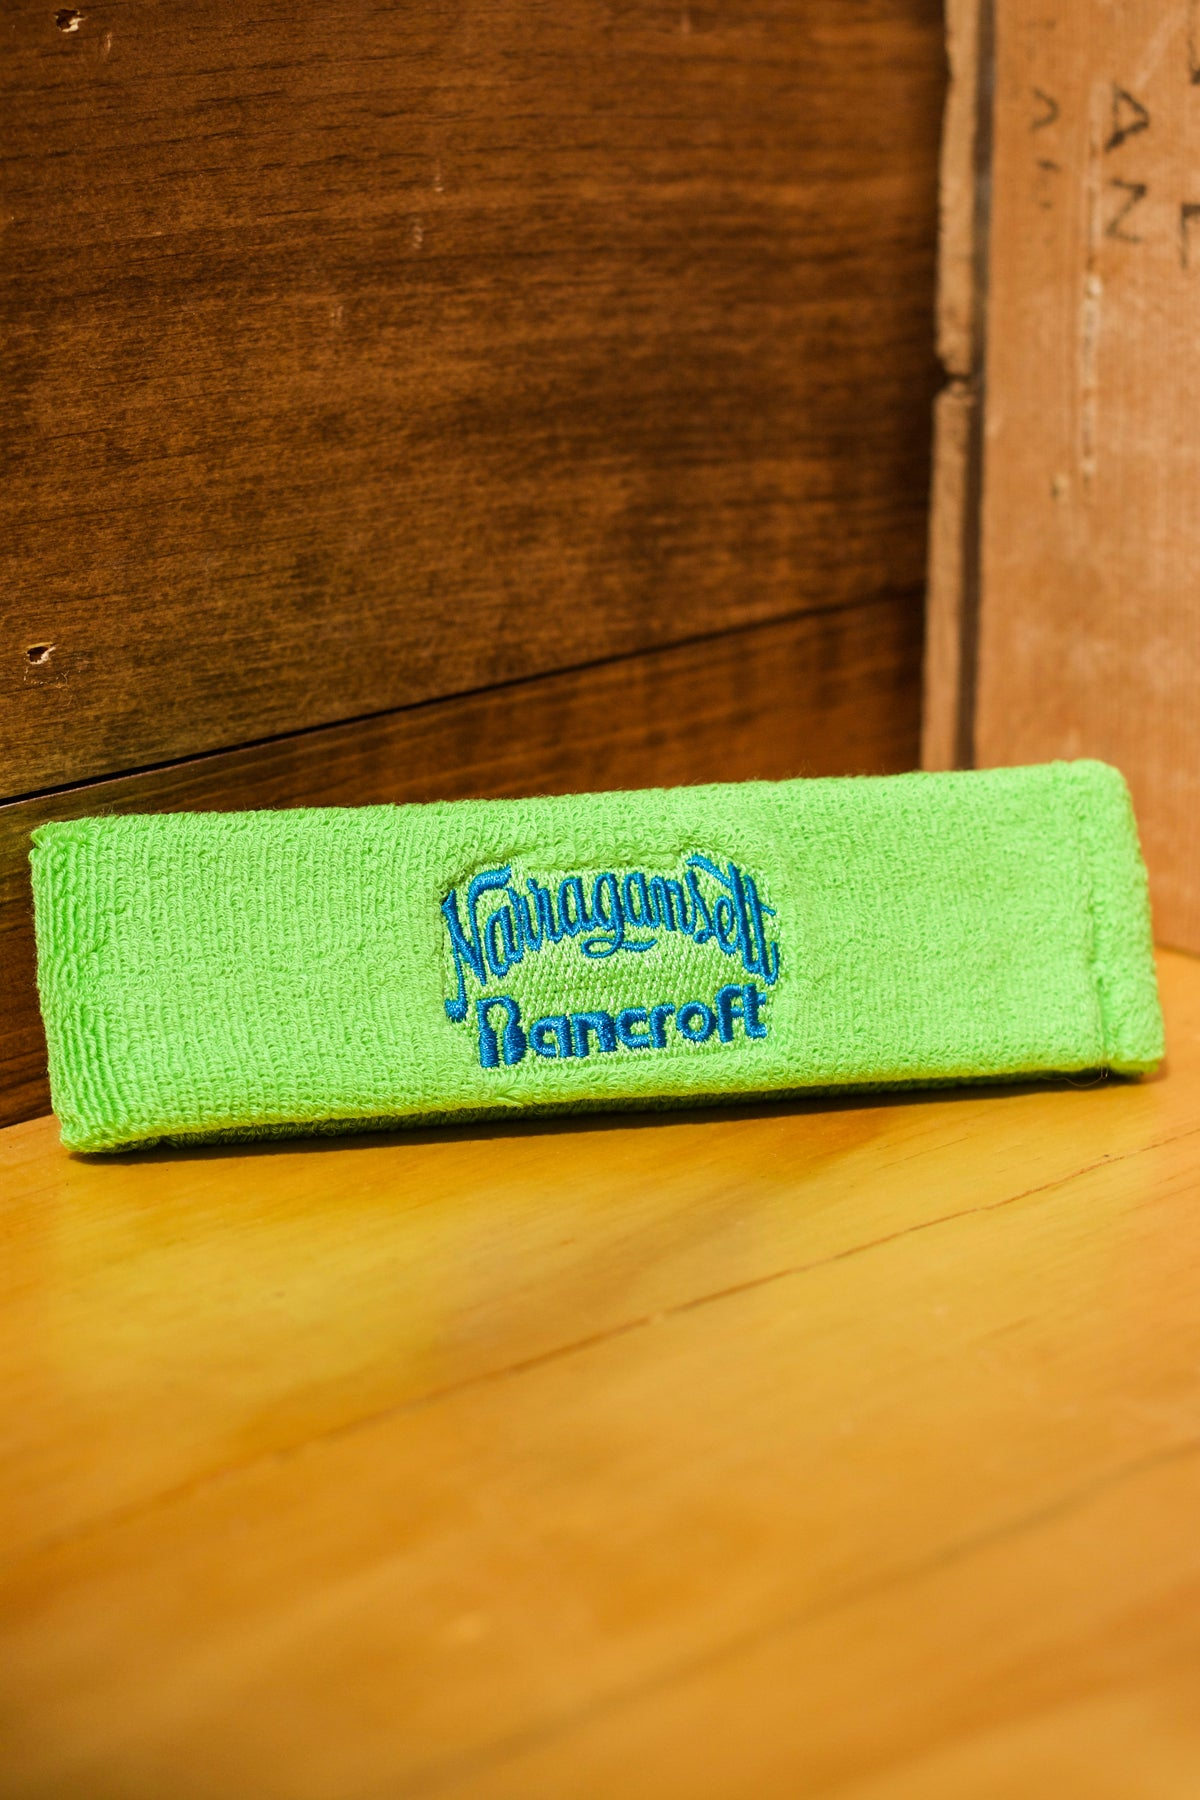 The Bancroft Sweatband